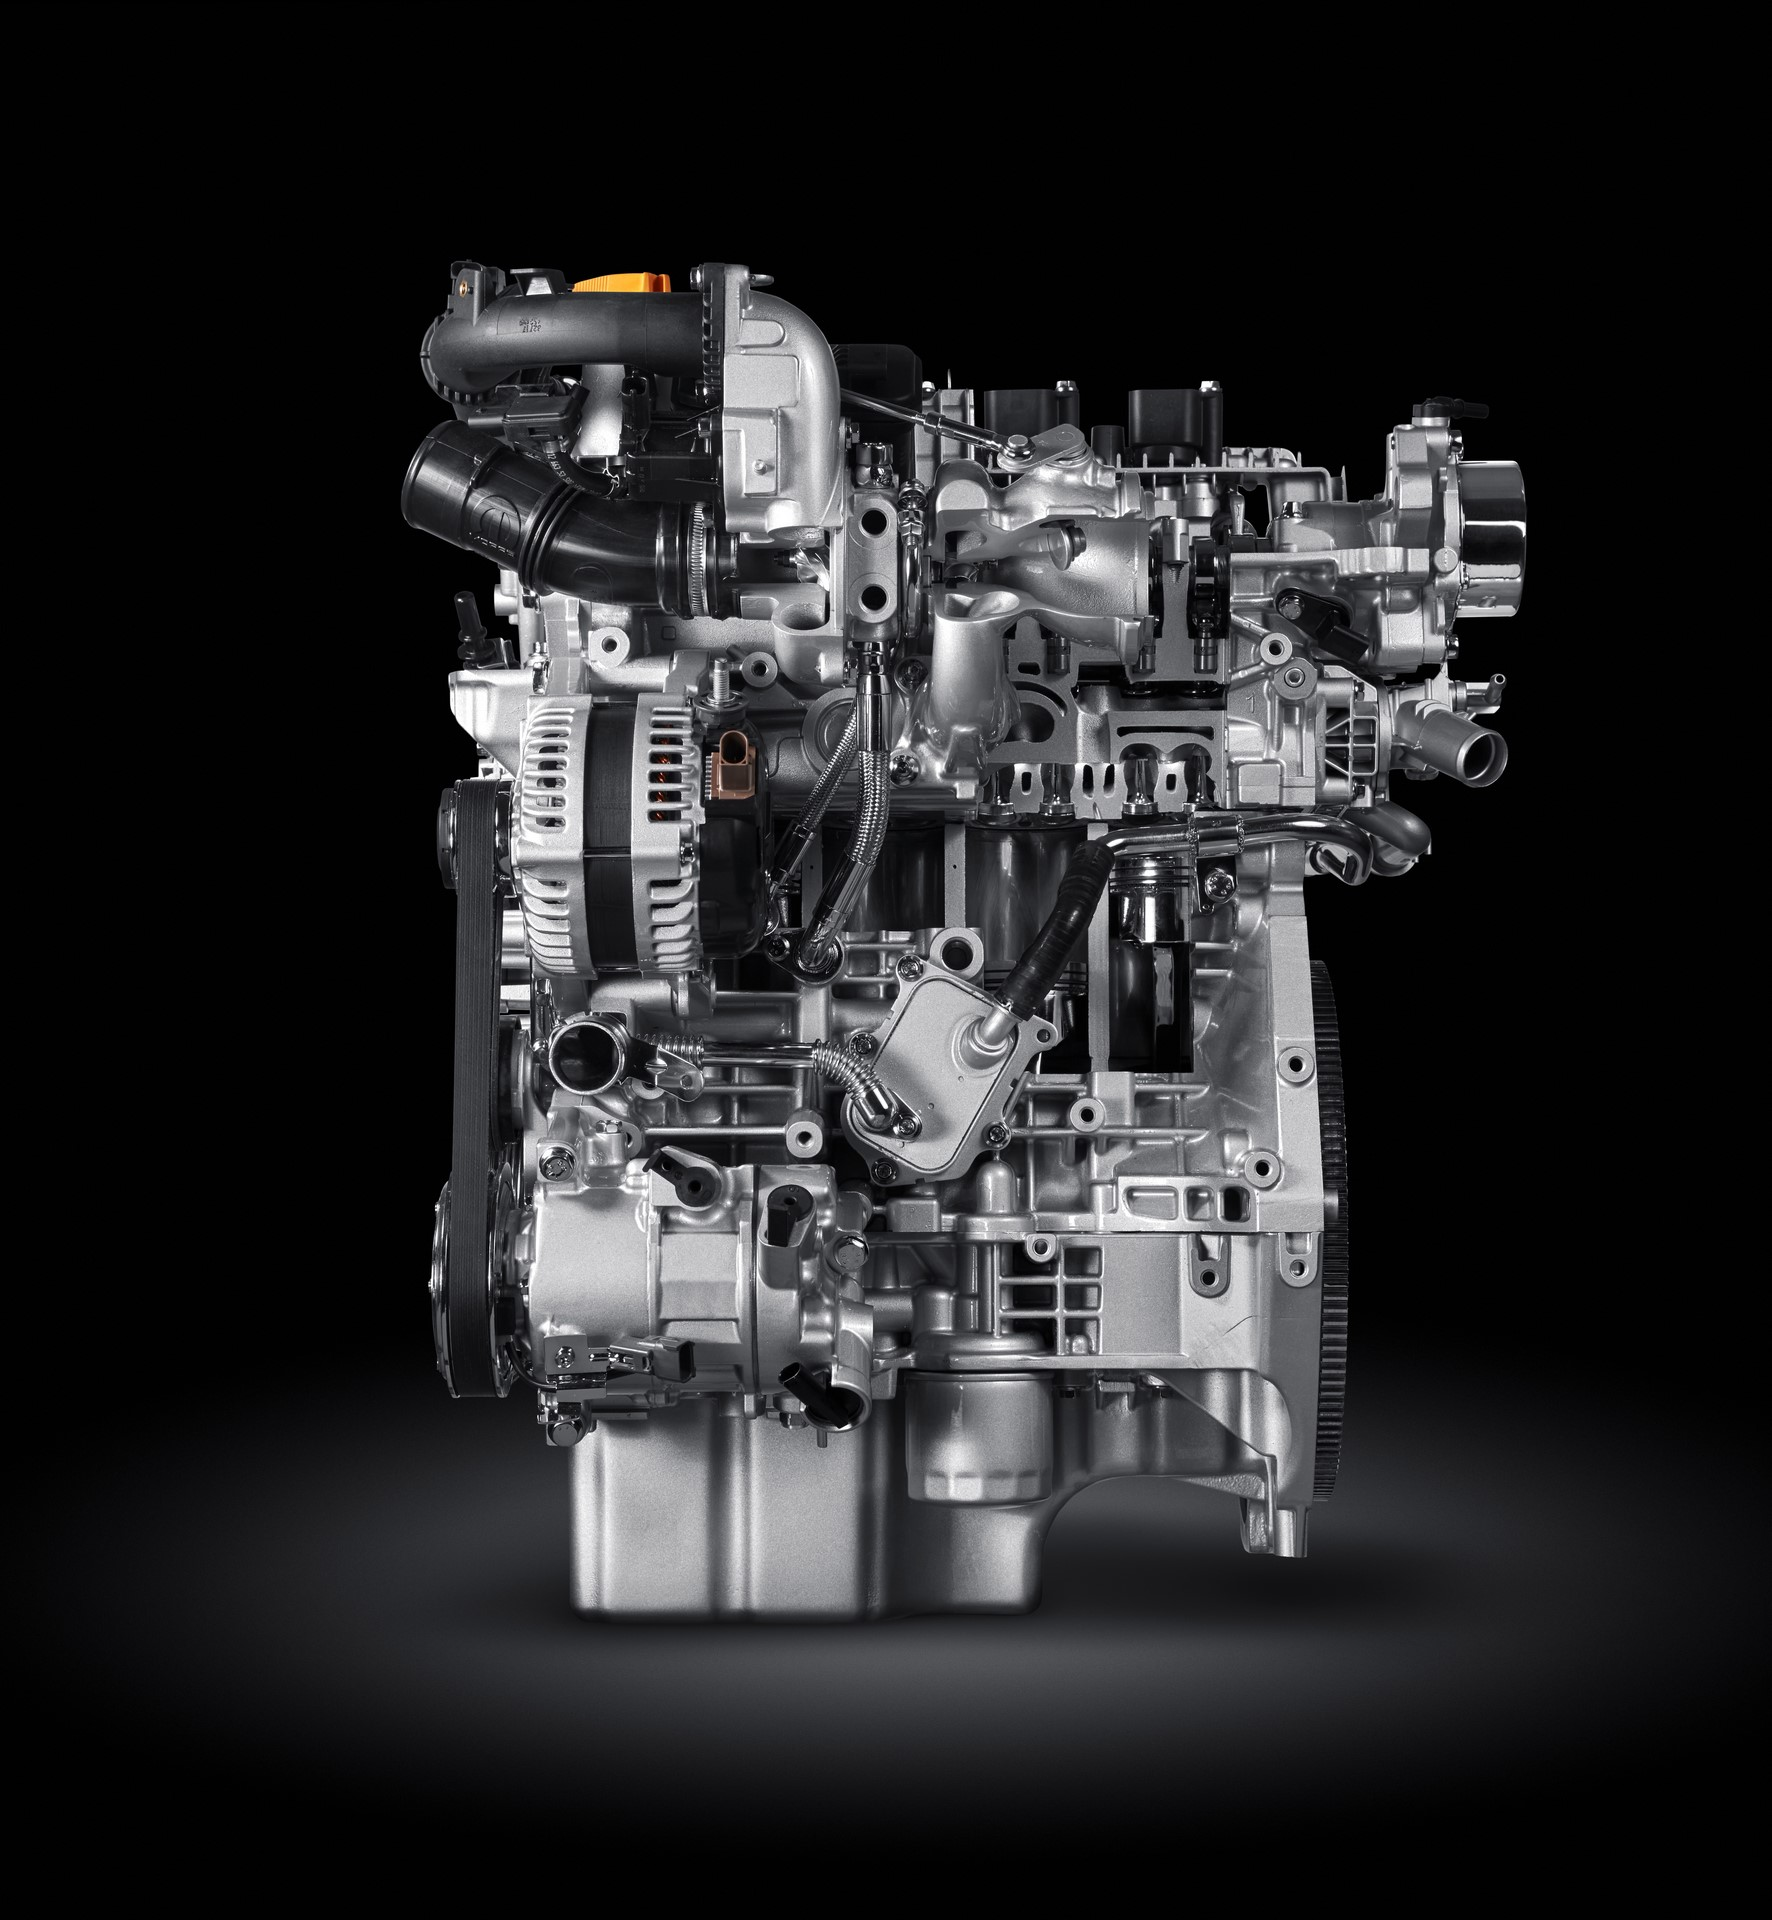 New-13L-Turbo-4-cylinder-150HP_04